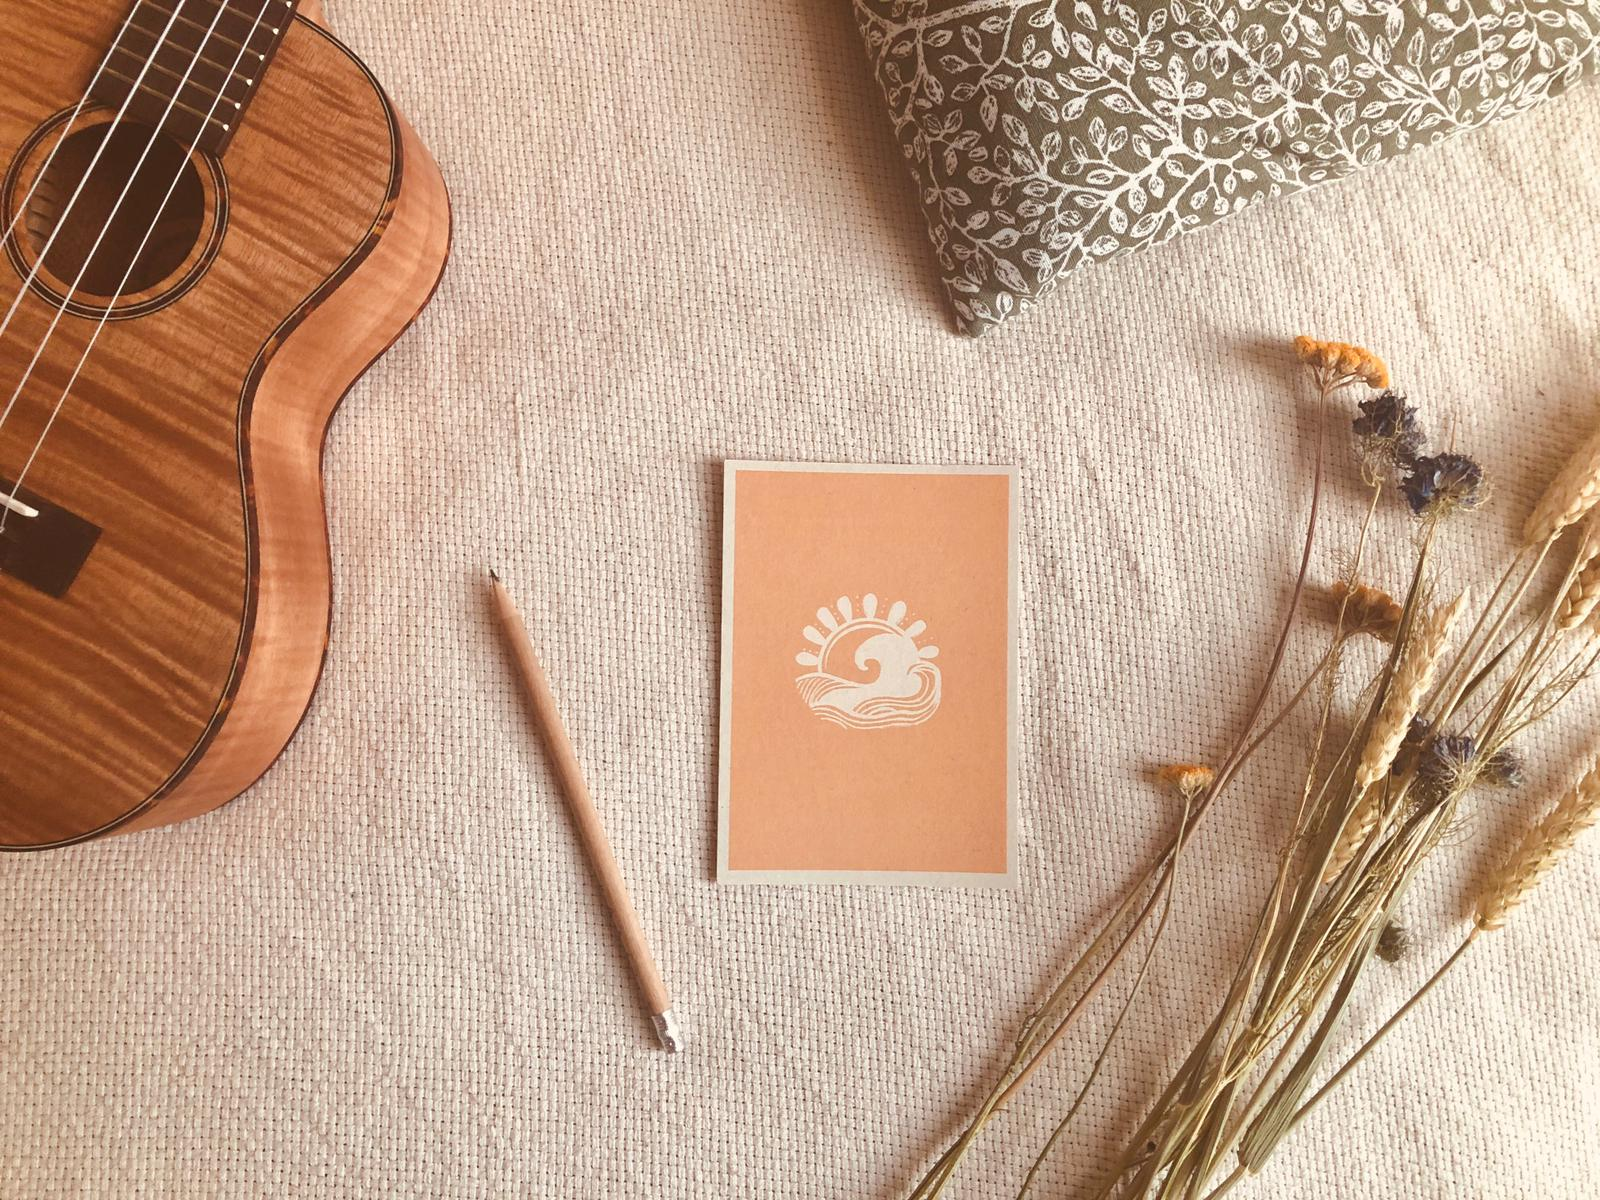 Orange and white postcard on a white blanket next to a pencil, ukulele, dried flowers, cushion